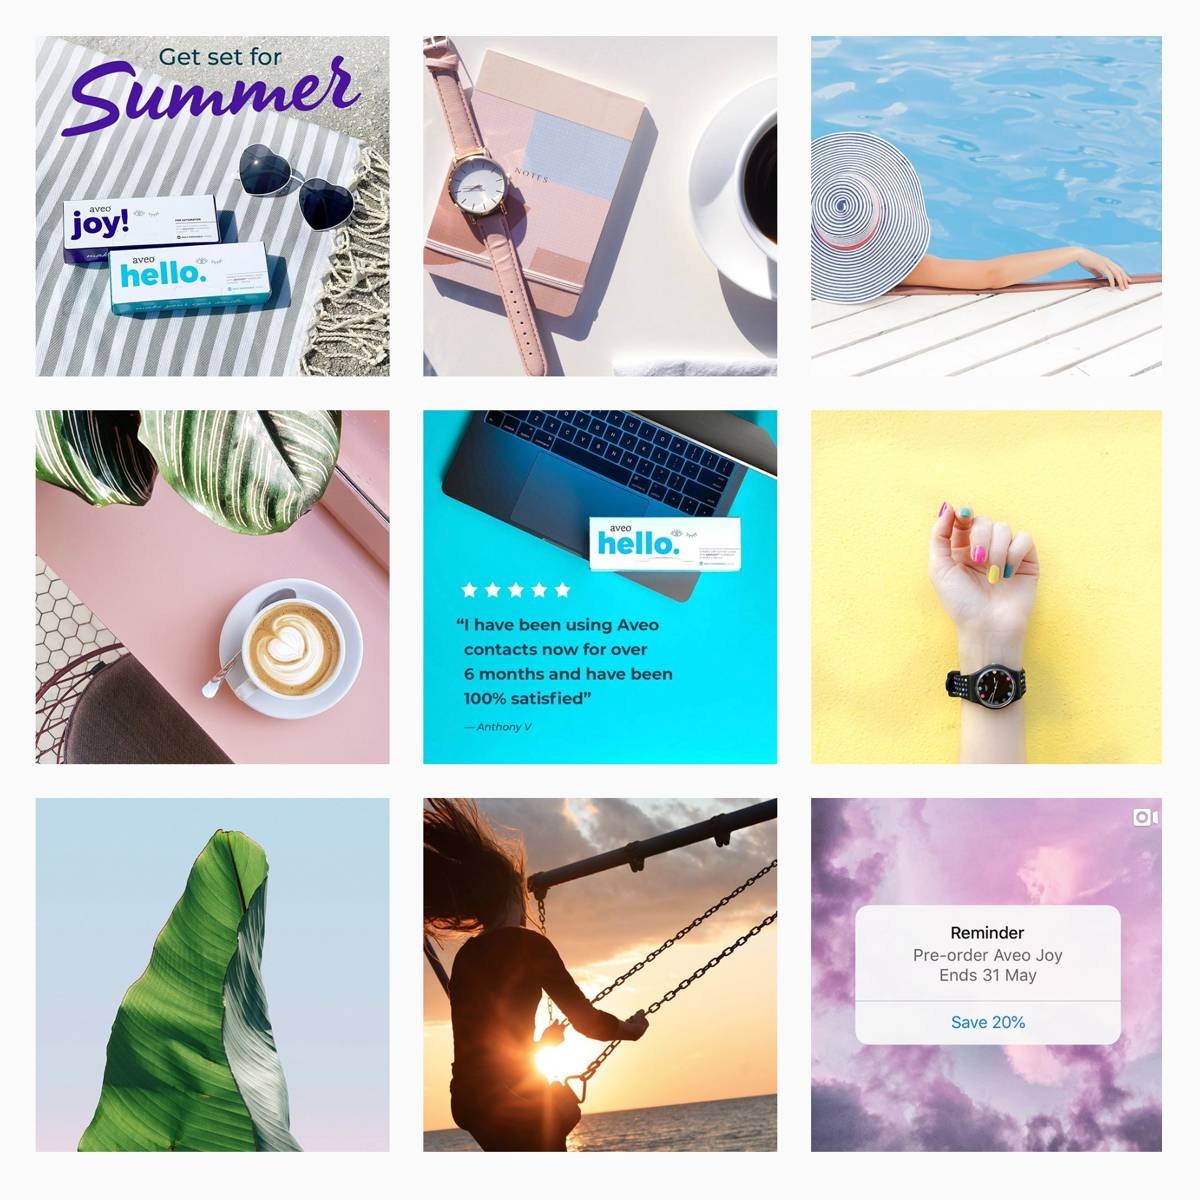 Aveo Visions Instagram grid after BSTRO